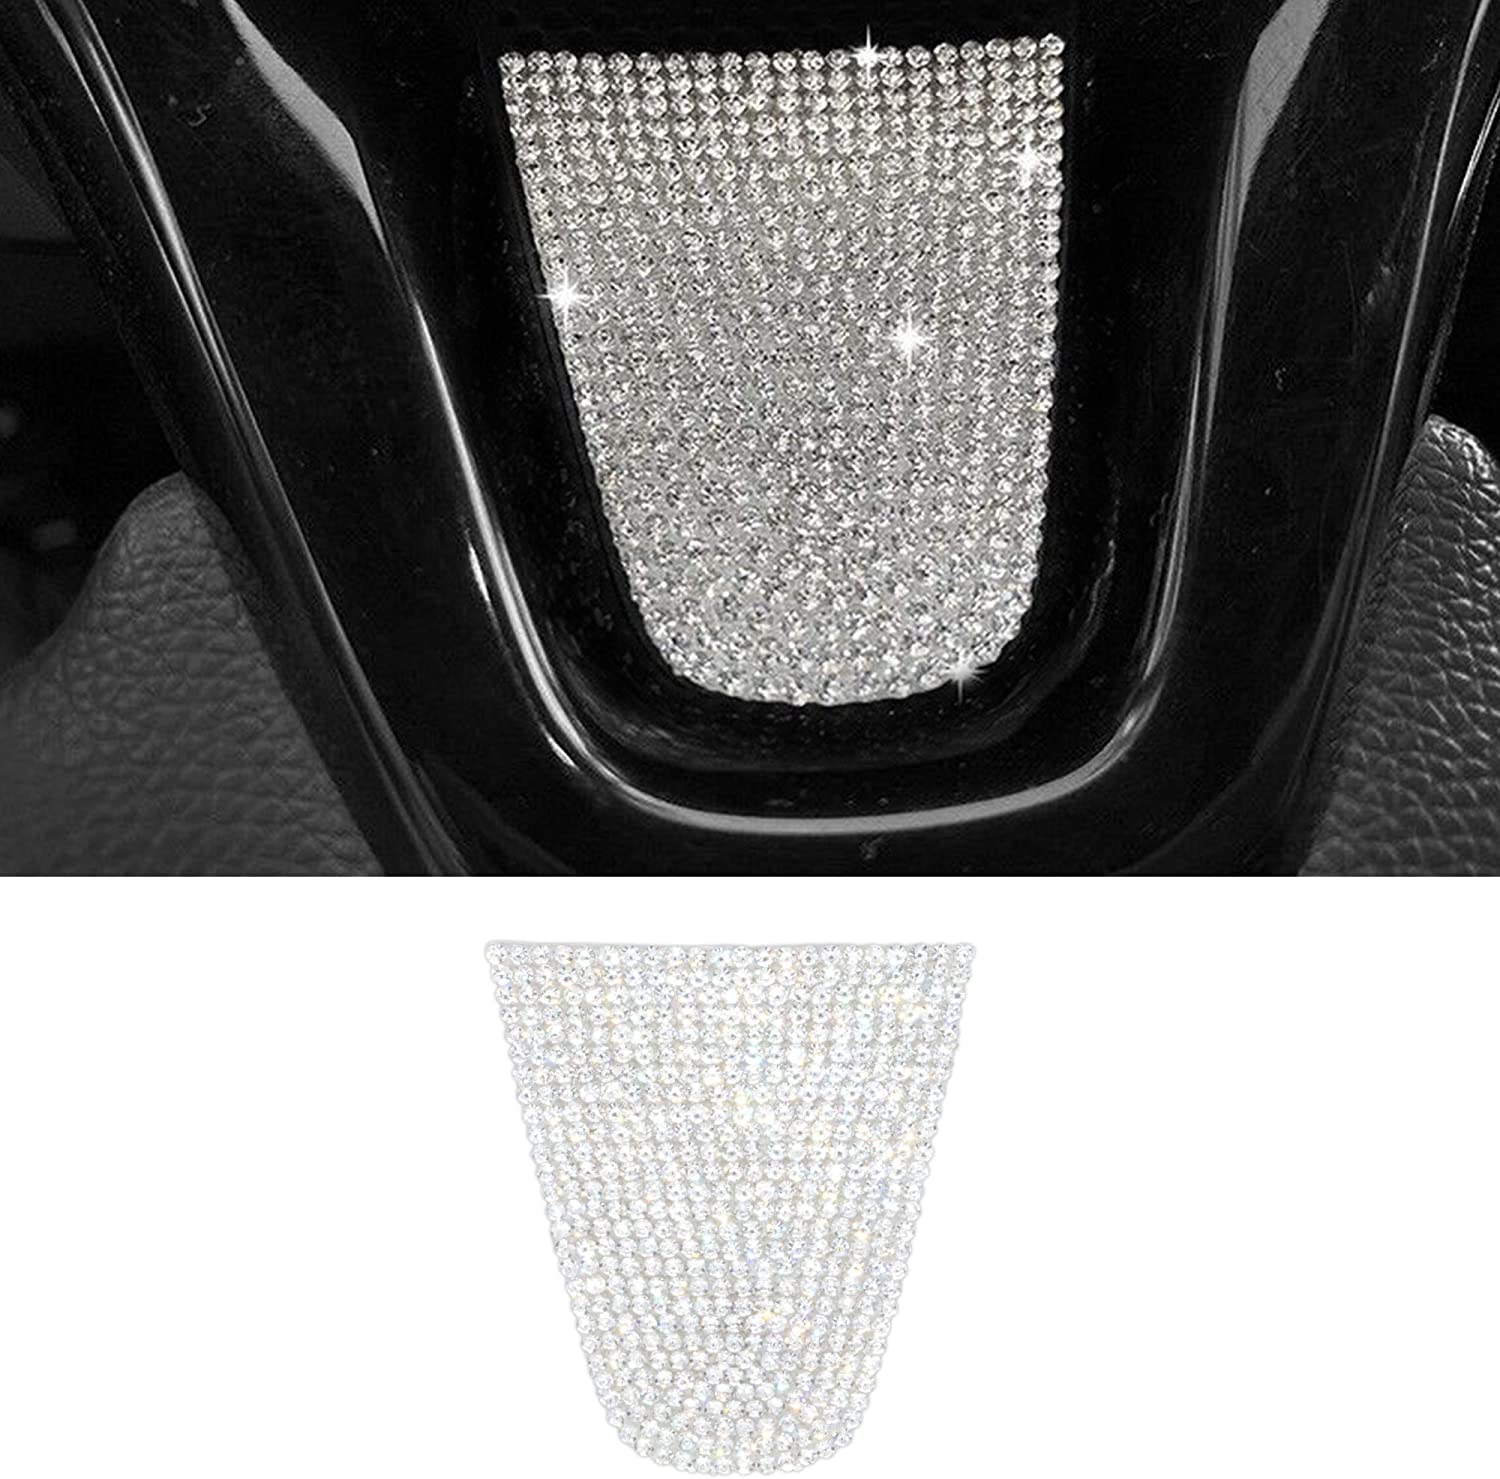 TopDall Steering Wheel Bombing new work Ignition Accessory Regular store Interior Crystal Bling